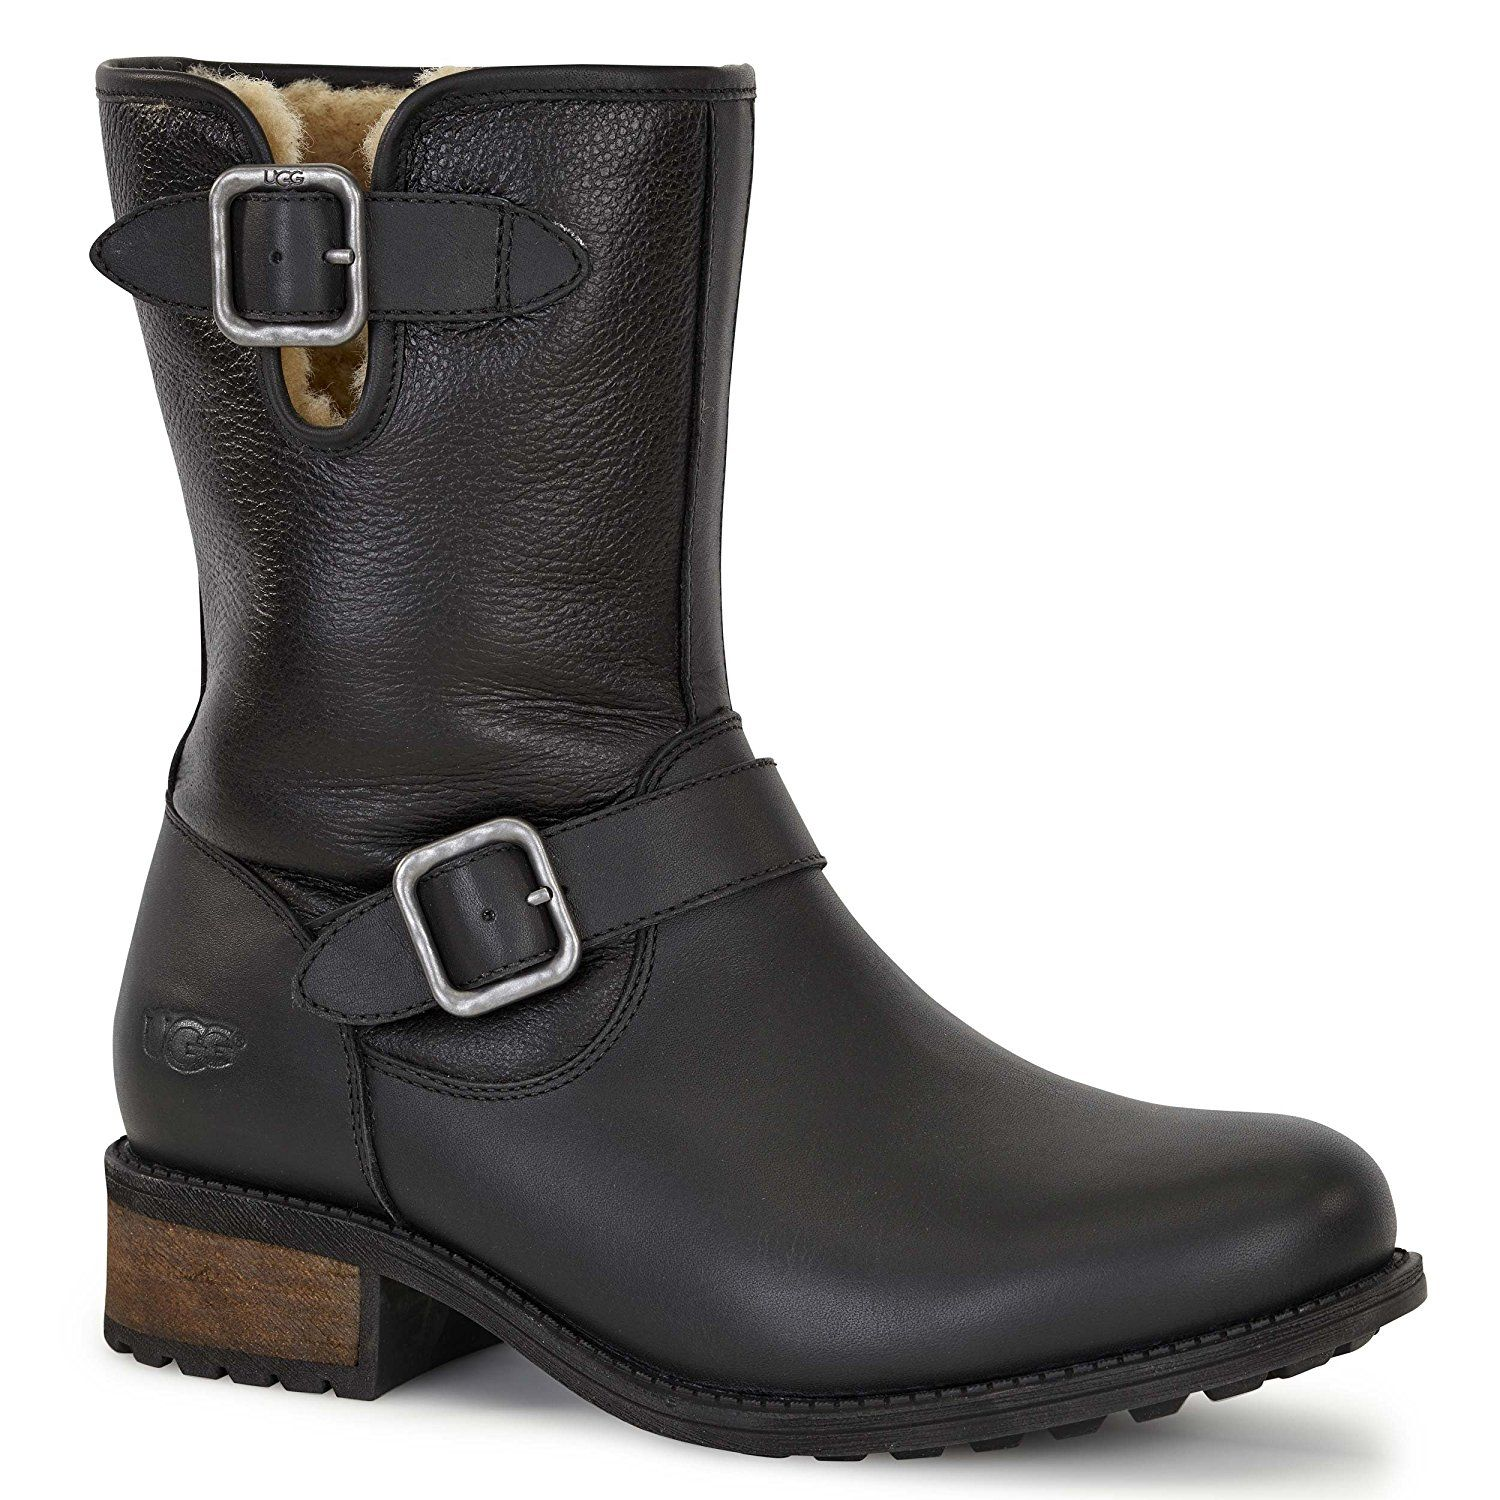 UGG Chaney Leather Women's Calf length Boots